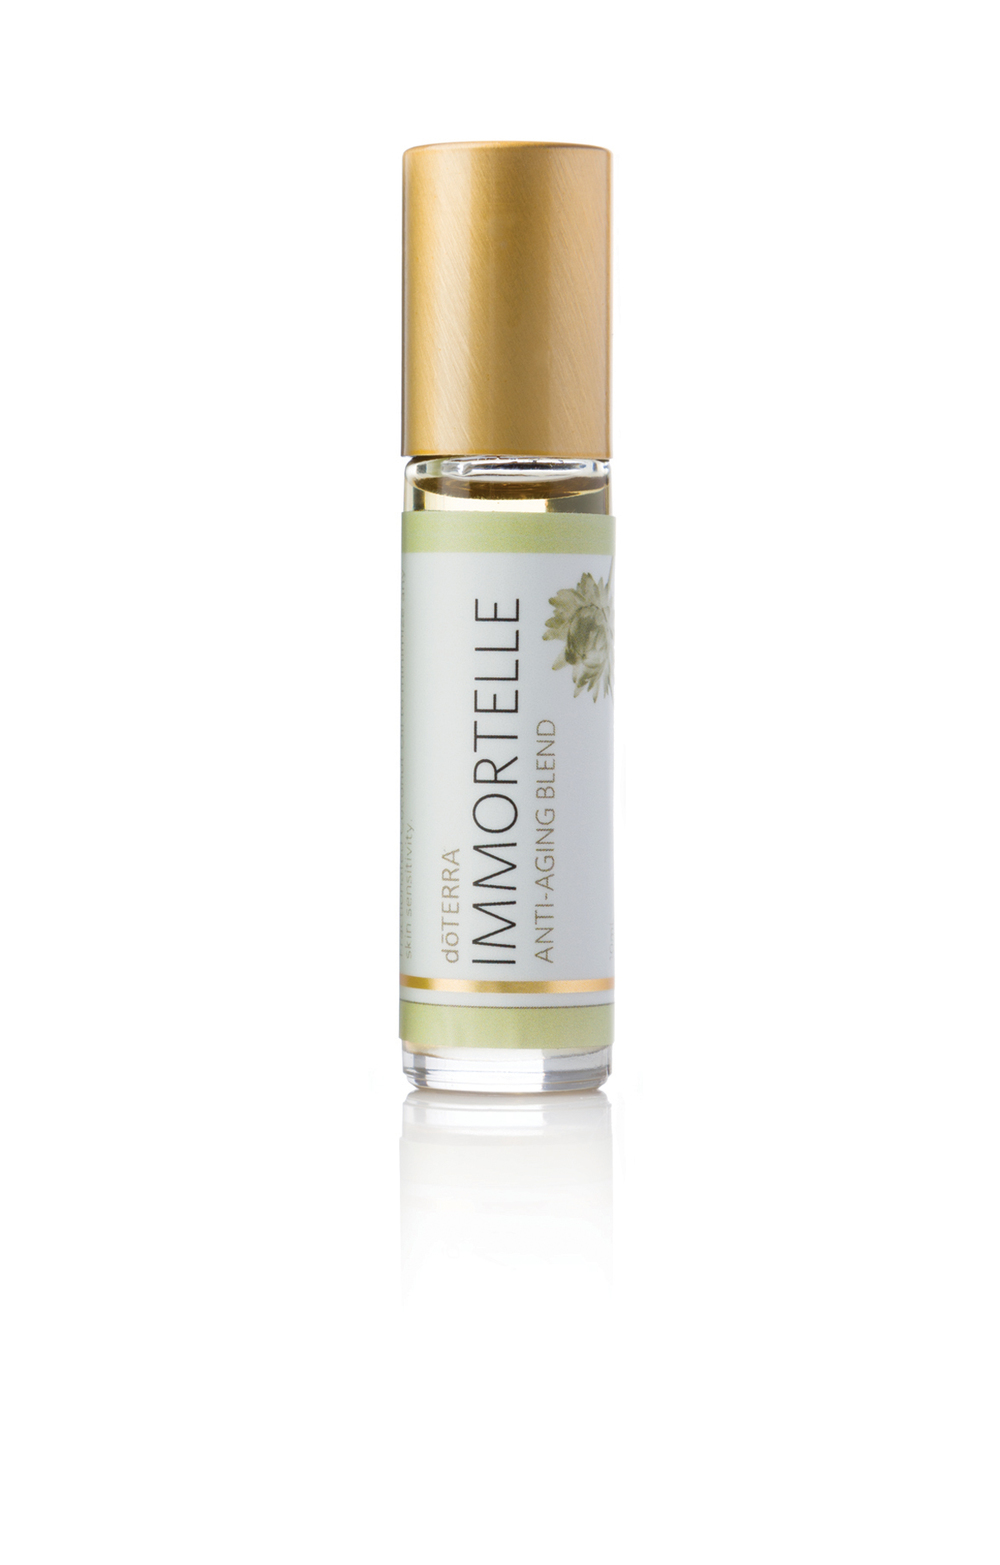 Immortelle Anti-Aging Essential Oils Blend